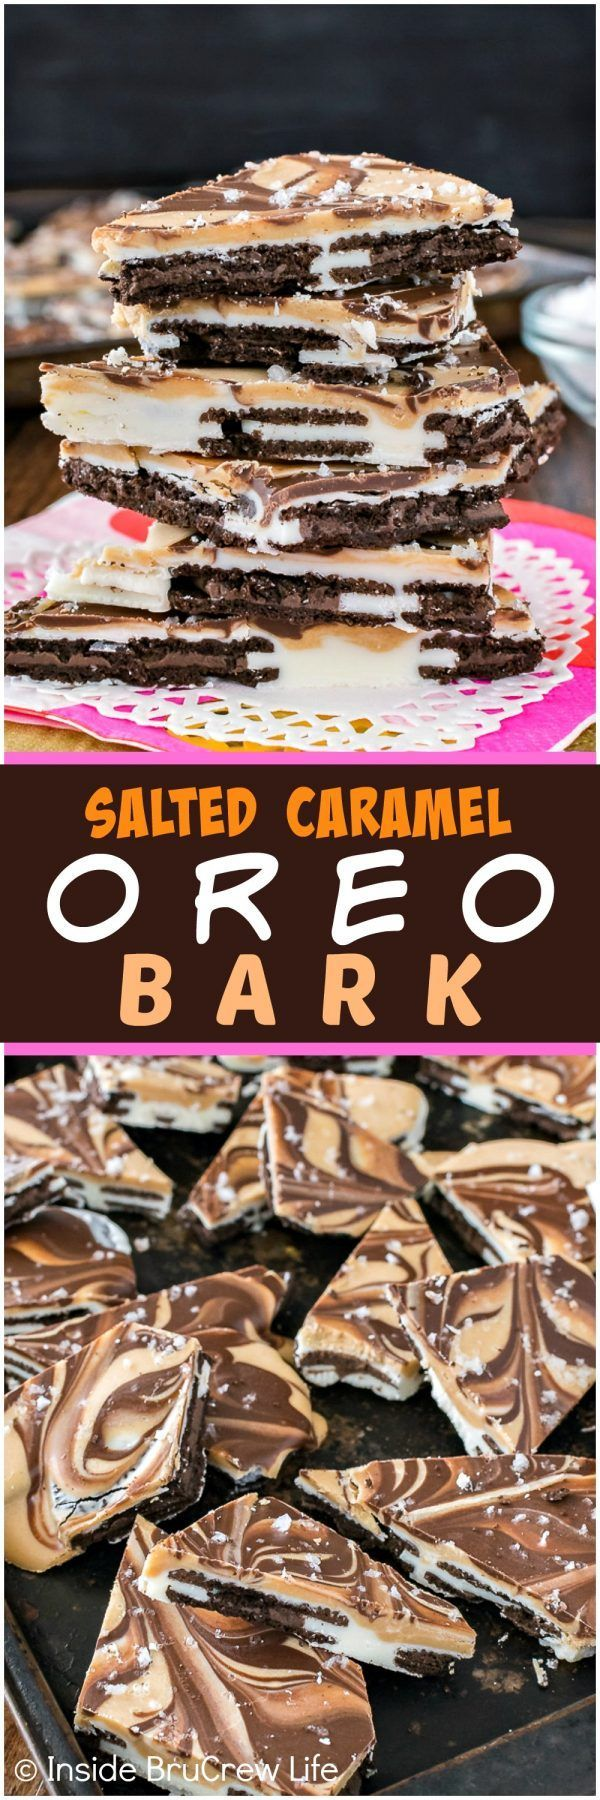 Salted Caramel Oreo Bark - swirls of chocolate and caramel on top of cookies makes this no bake candy disappear in a hurry.  Easy recipe when you need a sweet treat in a hurry!